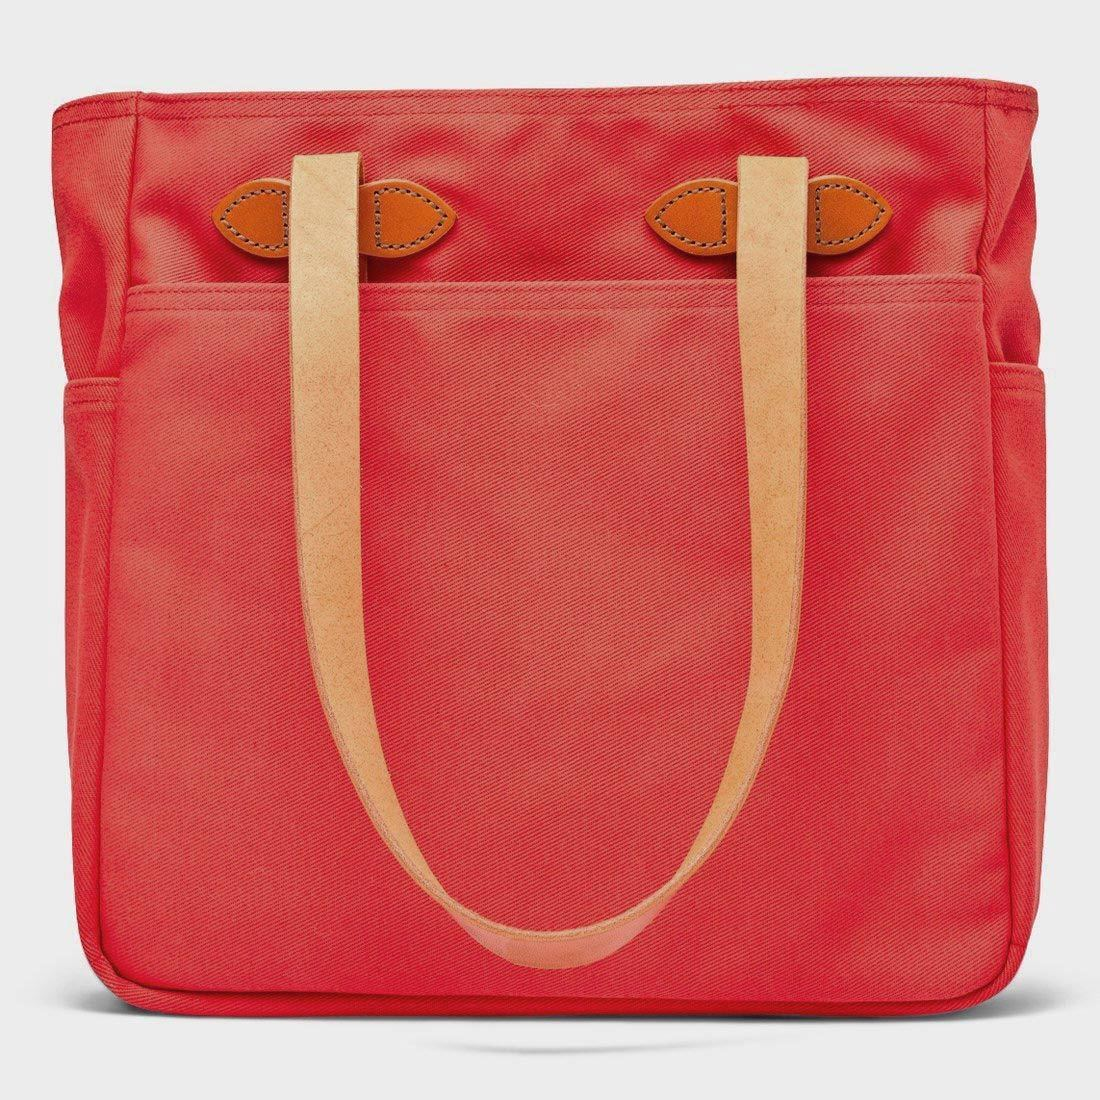 Filson Tote Bag without Zipper Mackinaw Red